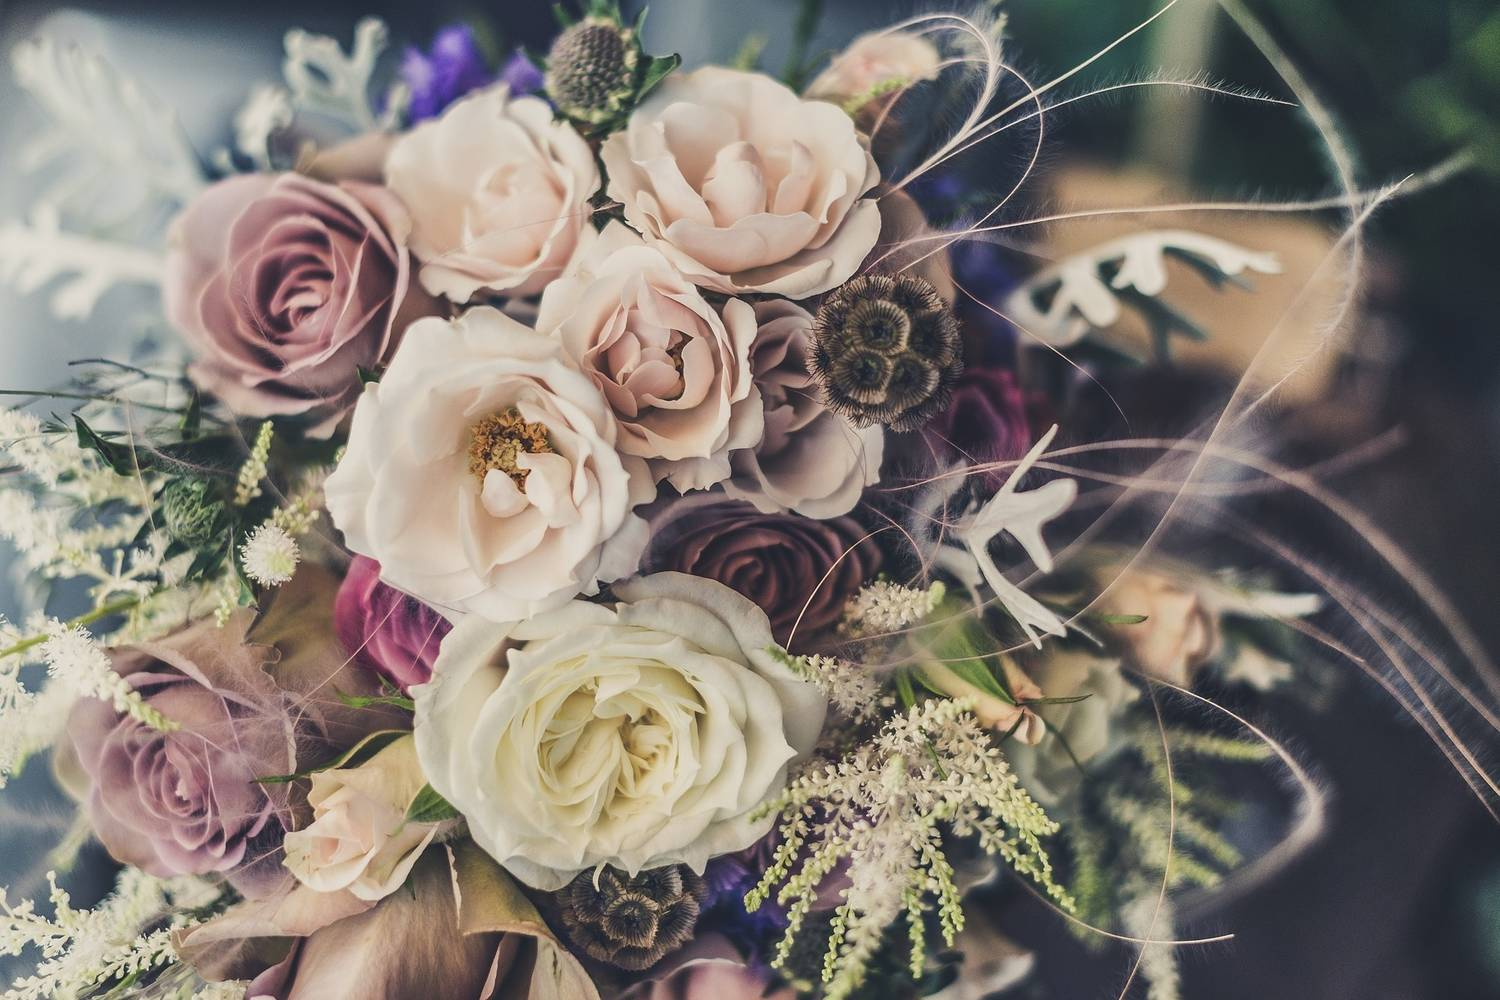 Stunning wedding bouquet made of muted coloured flowers